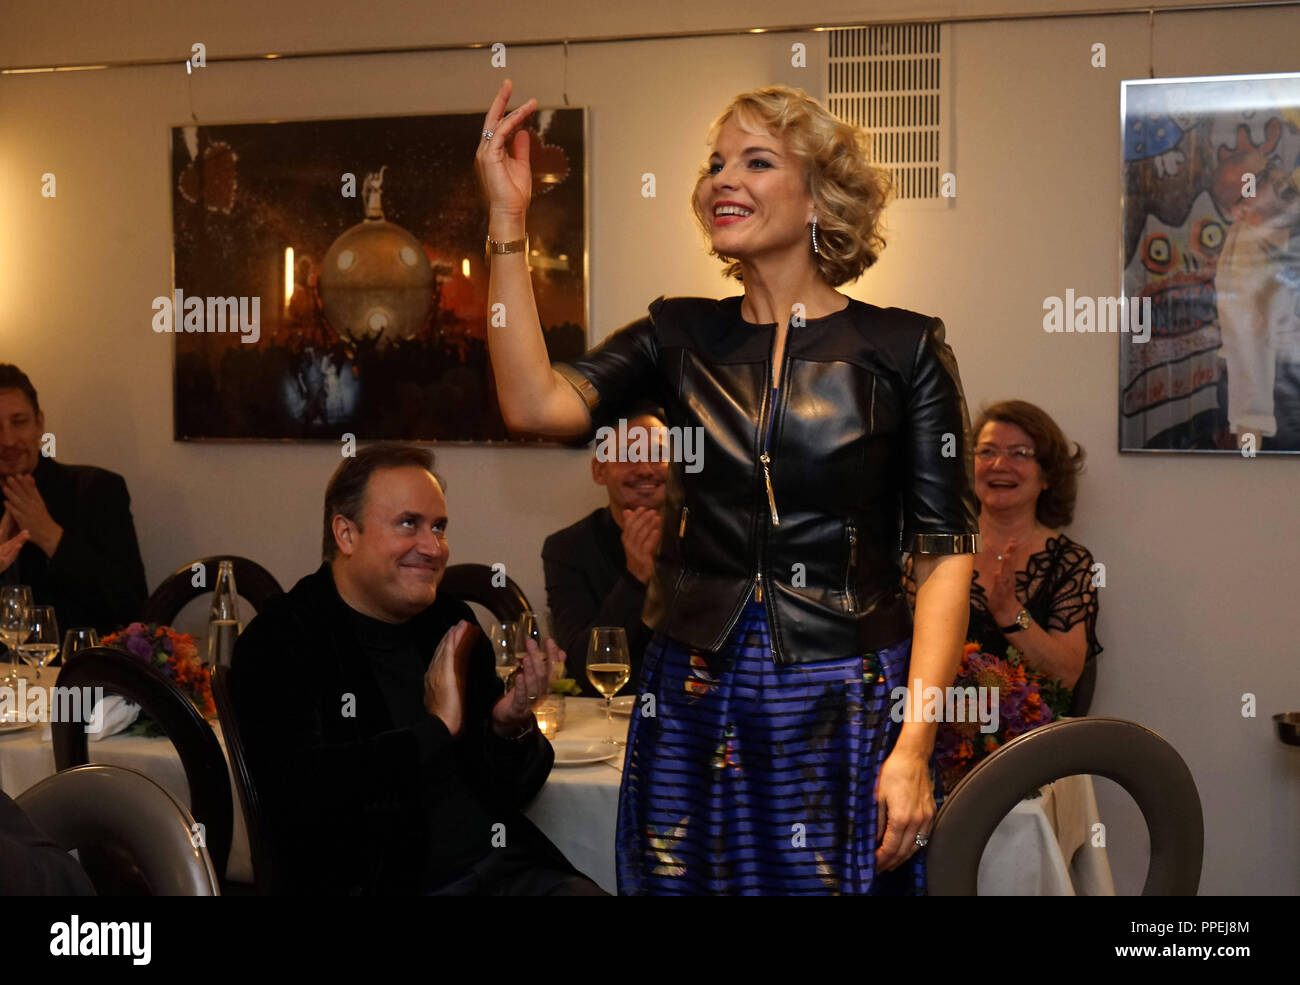 The Latvian mezzosoprano Elina Garanca celebrating in the hotel 'Bayerischer Hof' following the premiere of the Donezetti opera 'La Favorite' in the Bavarian State Opera. To her left is her husband, Karel Mark Chichon, who conducted the opera premiere. - Stock Image